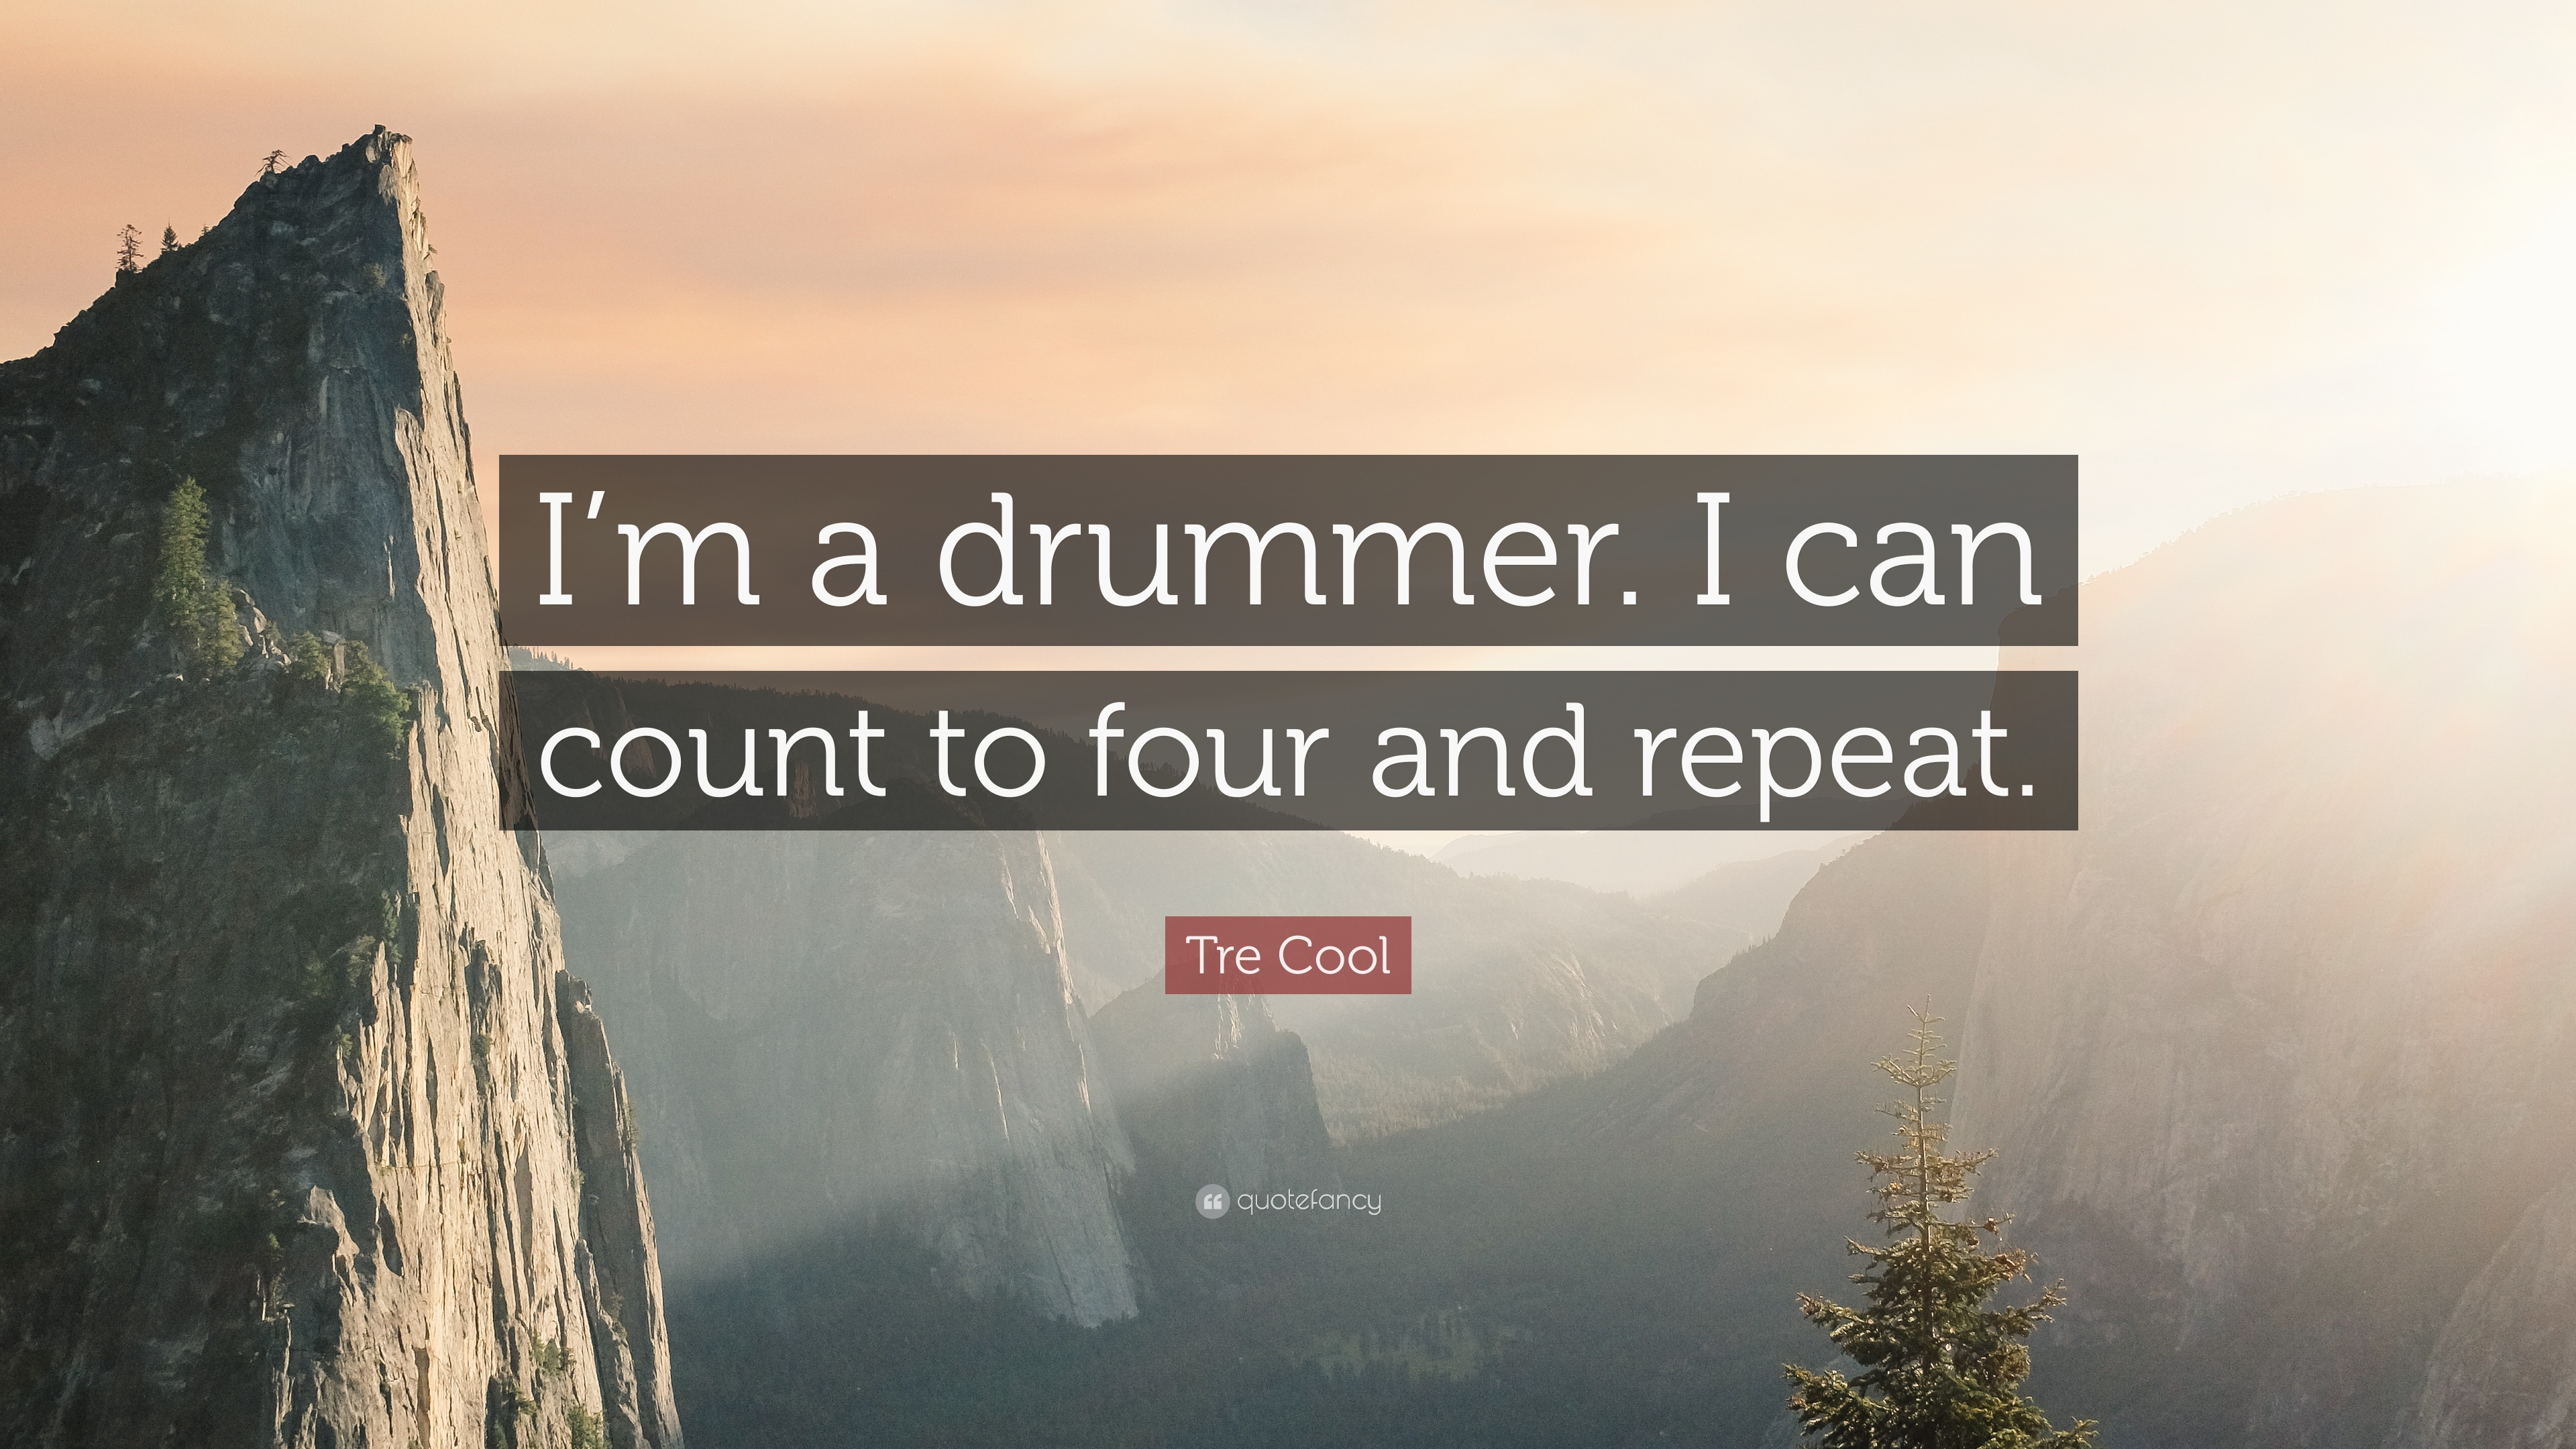 Tre Cool Quotes (29 wallpapers) - Quotefancy